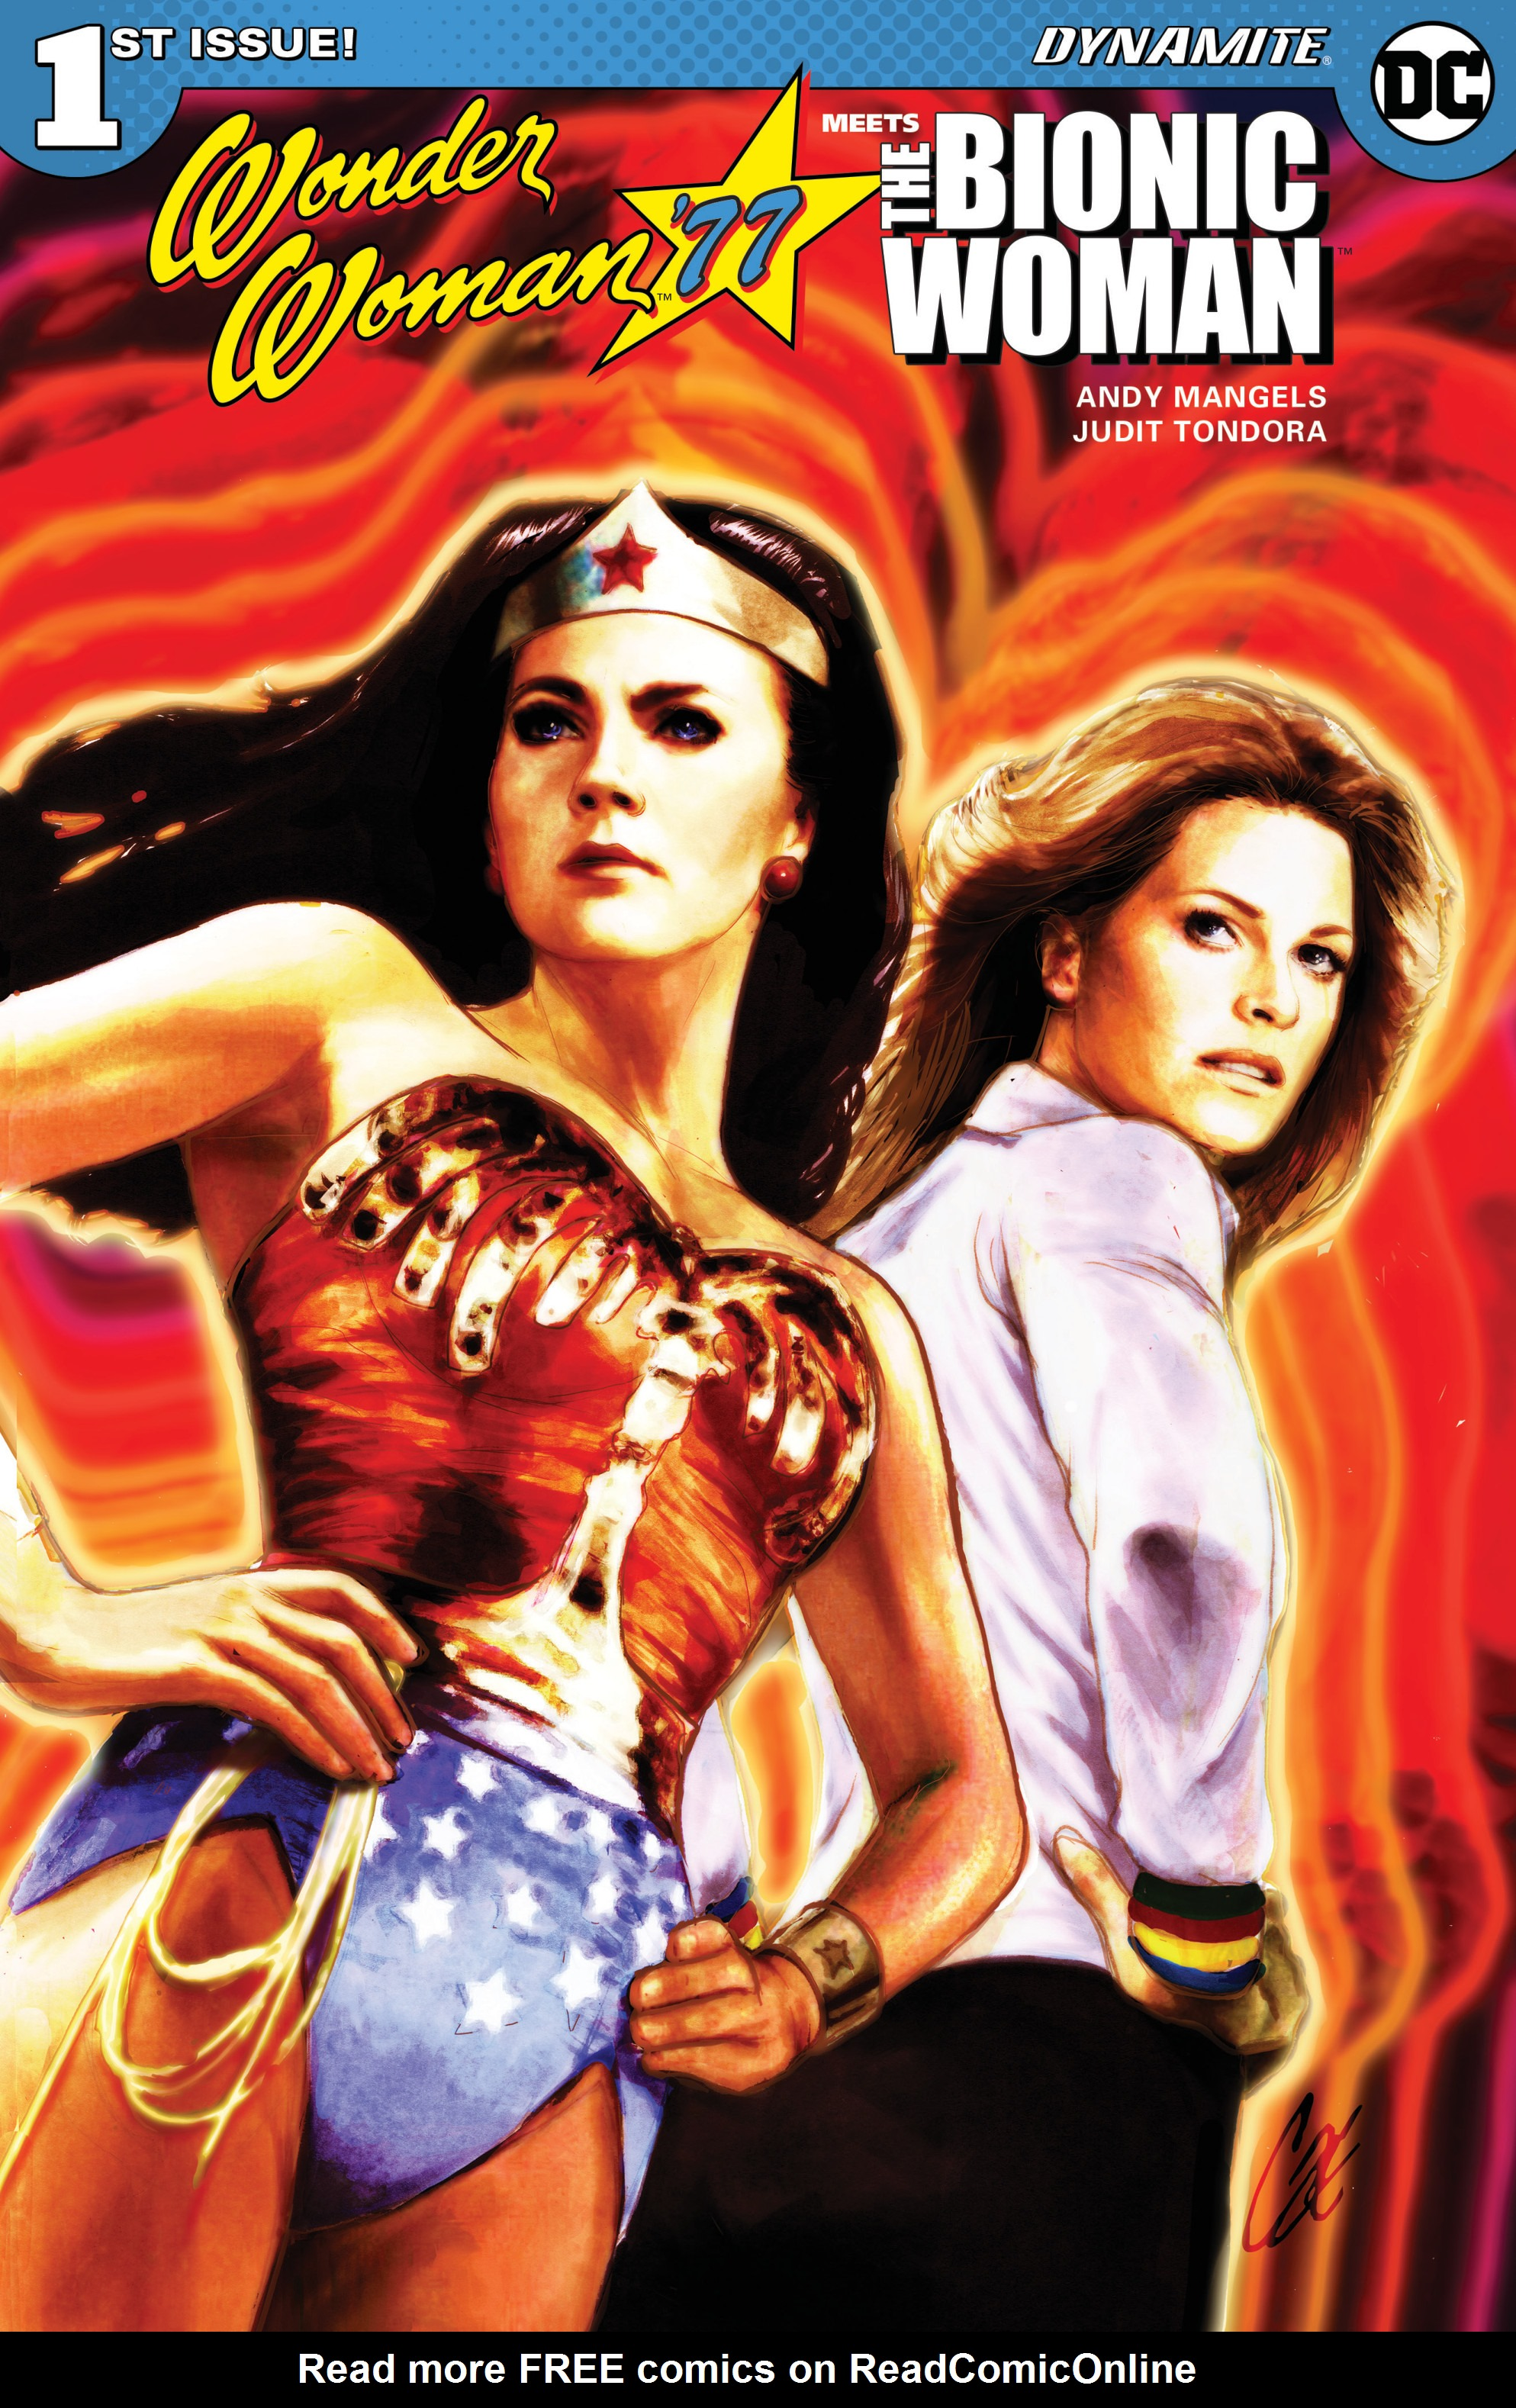 Read online Wonder Woman '77 Meets The Bionic Woman comic -  Issue #1 - 1